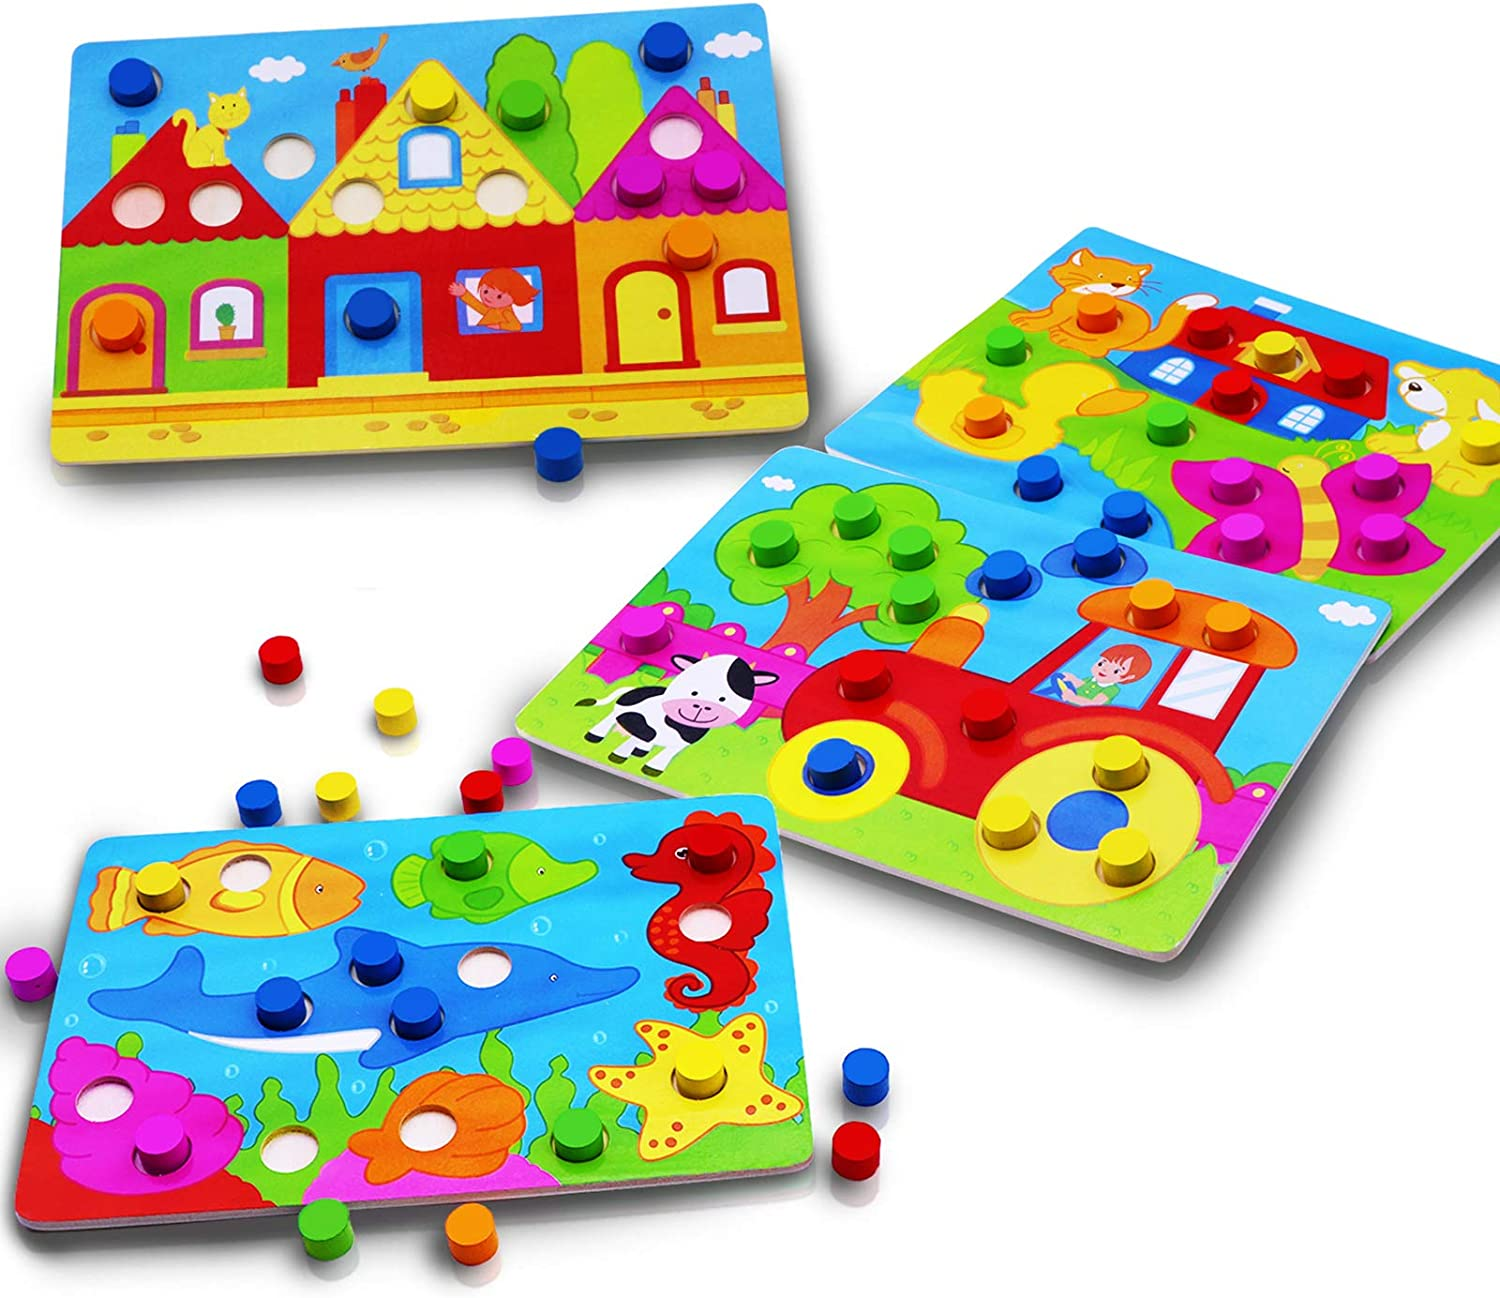 Amazon Com Color Wooden Jigsaw Puzzles For Kids Toddlers 3d Wooden Puzzle Girls Boys Color Board Animal Farm Sea House Shapes Puzzles Colors Learning Recognition Toys Set Gift Wooden Party Supplies 4pack